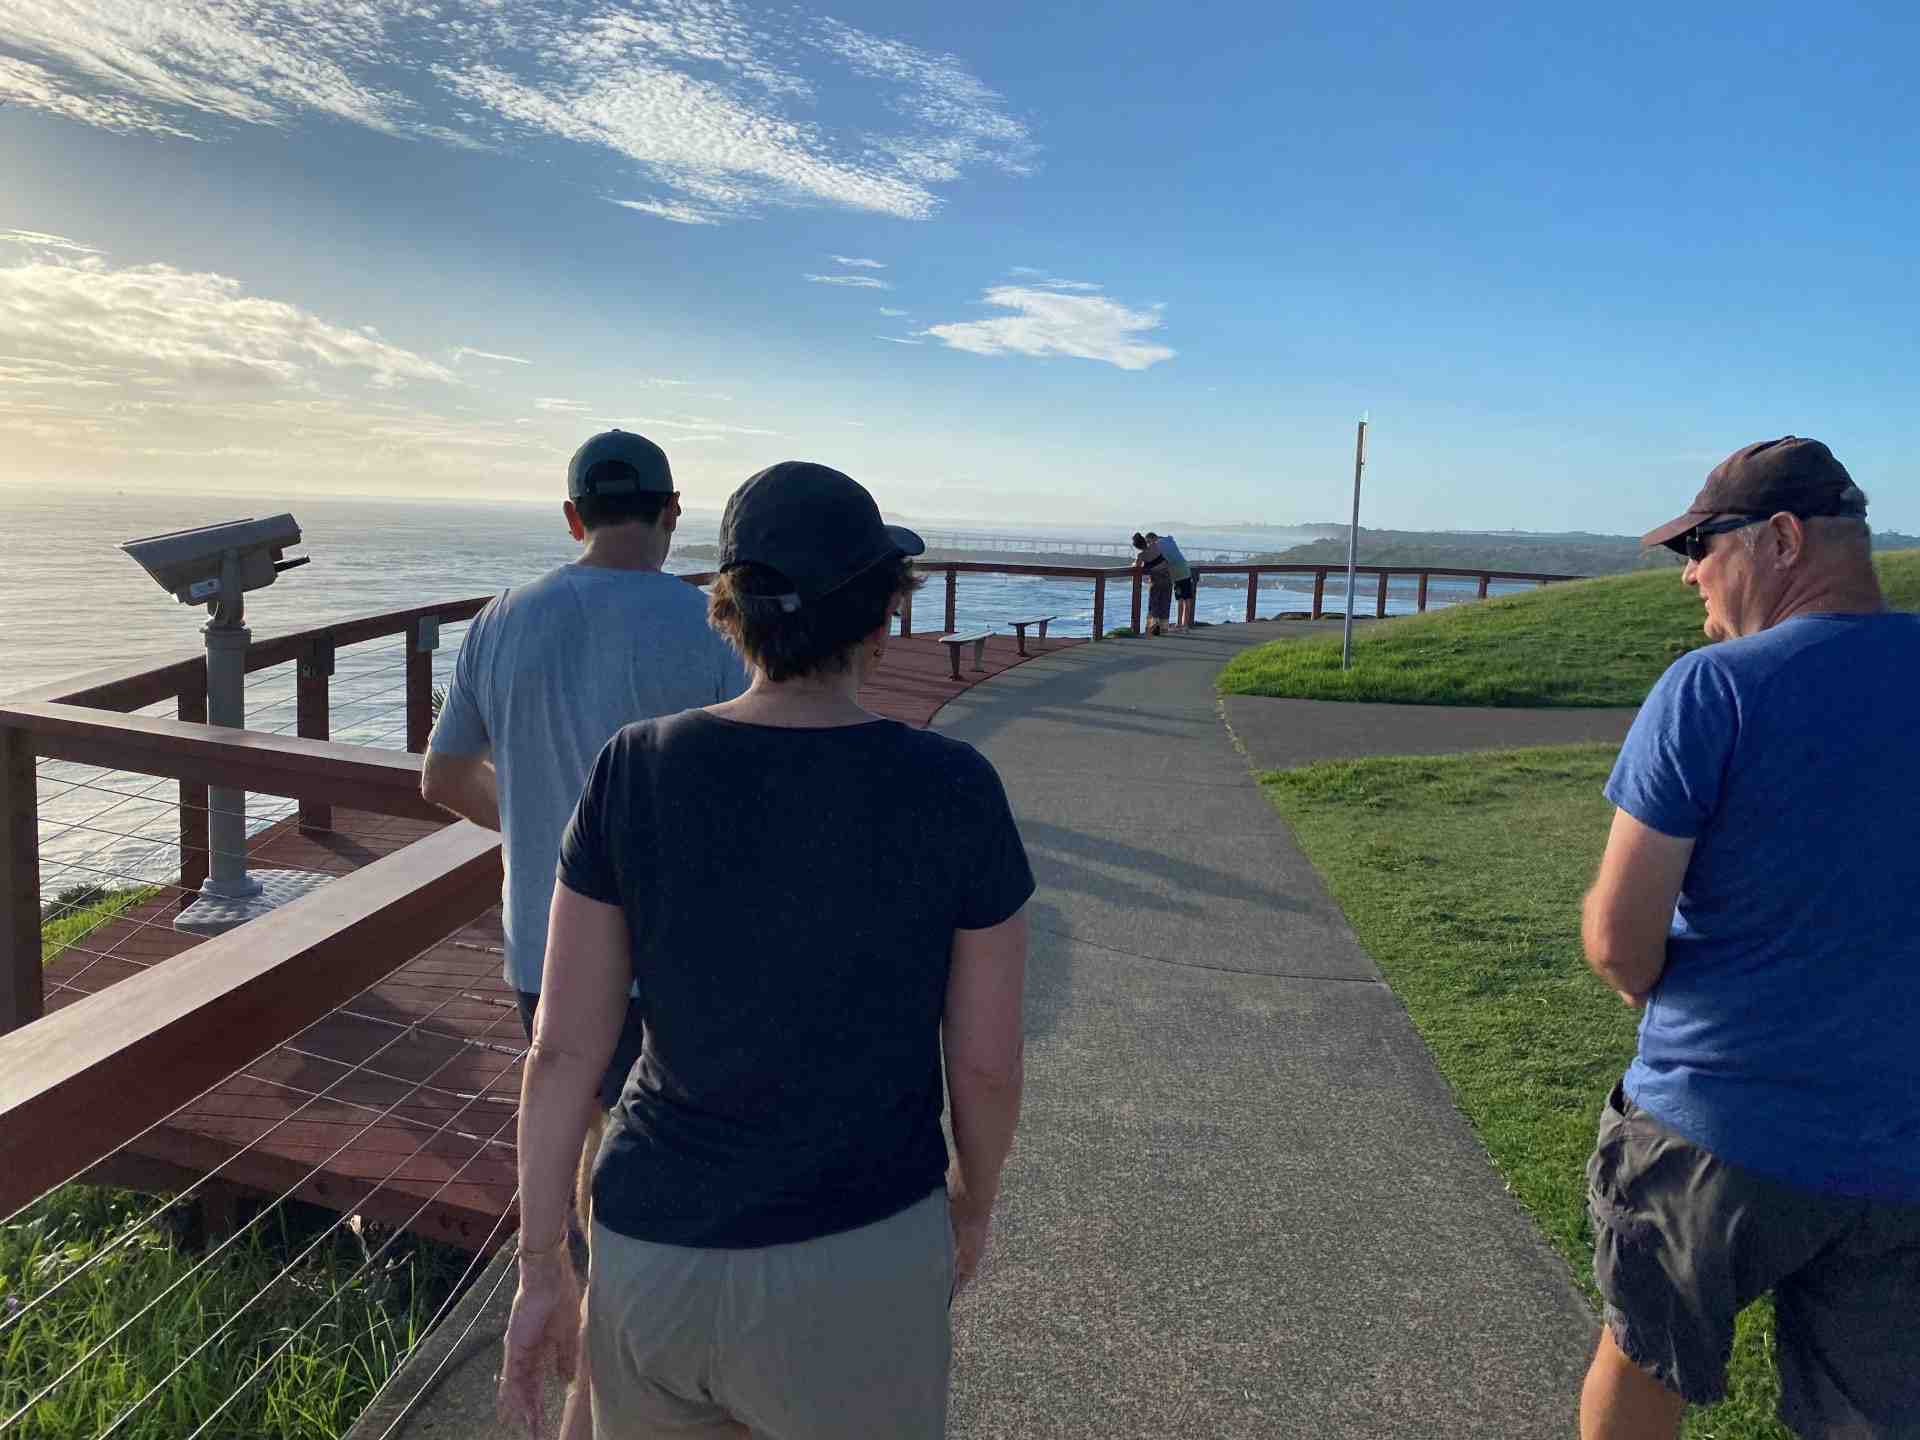 Walking across the border from Coolangatta to visit Tweed